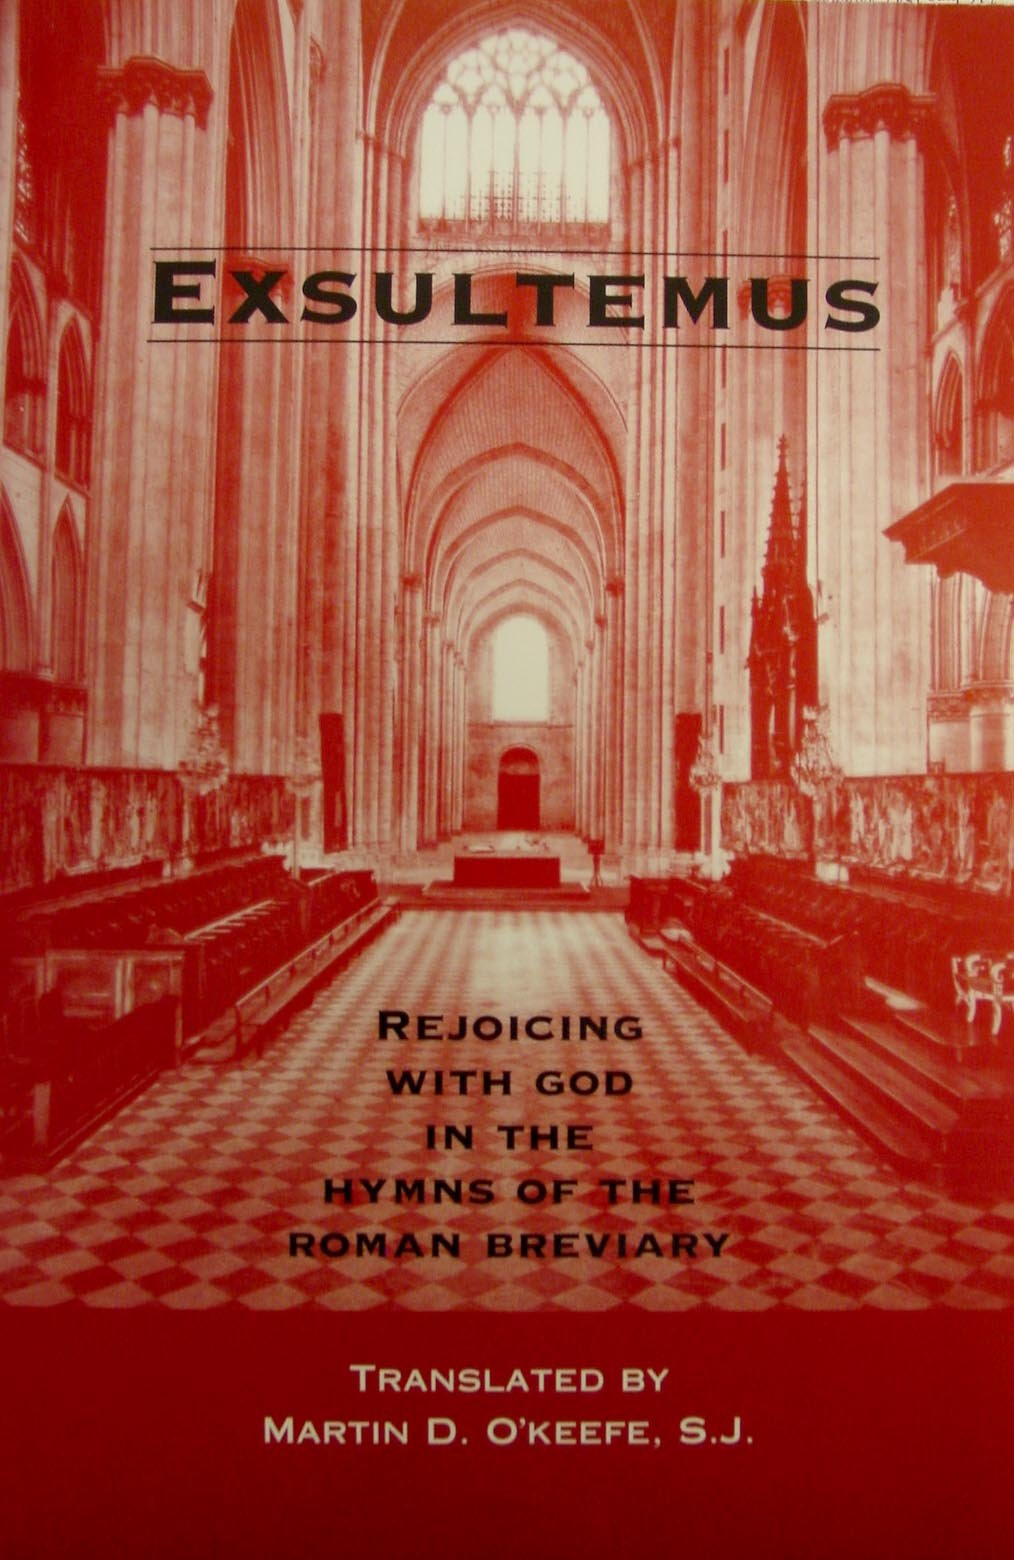 Download Exsultemus: Rejoicing with God in the hymns of the Roman breviary PDF